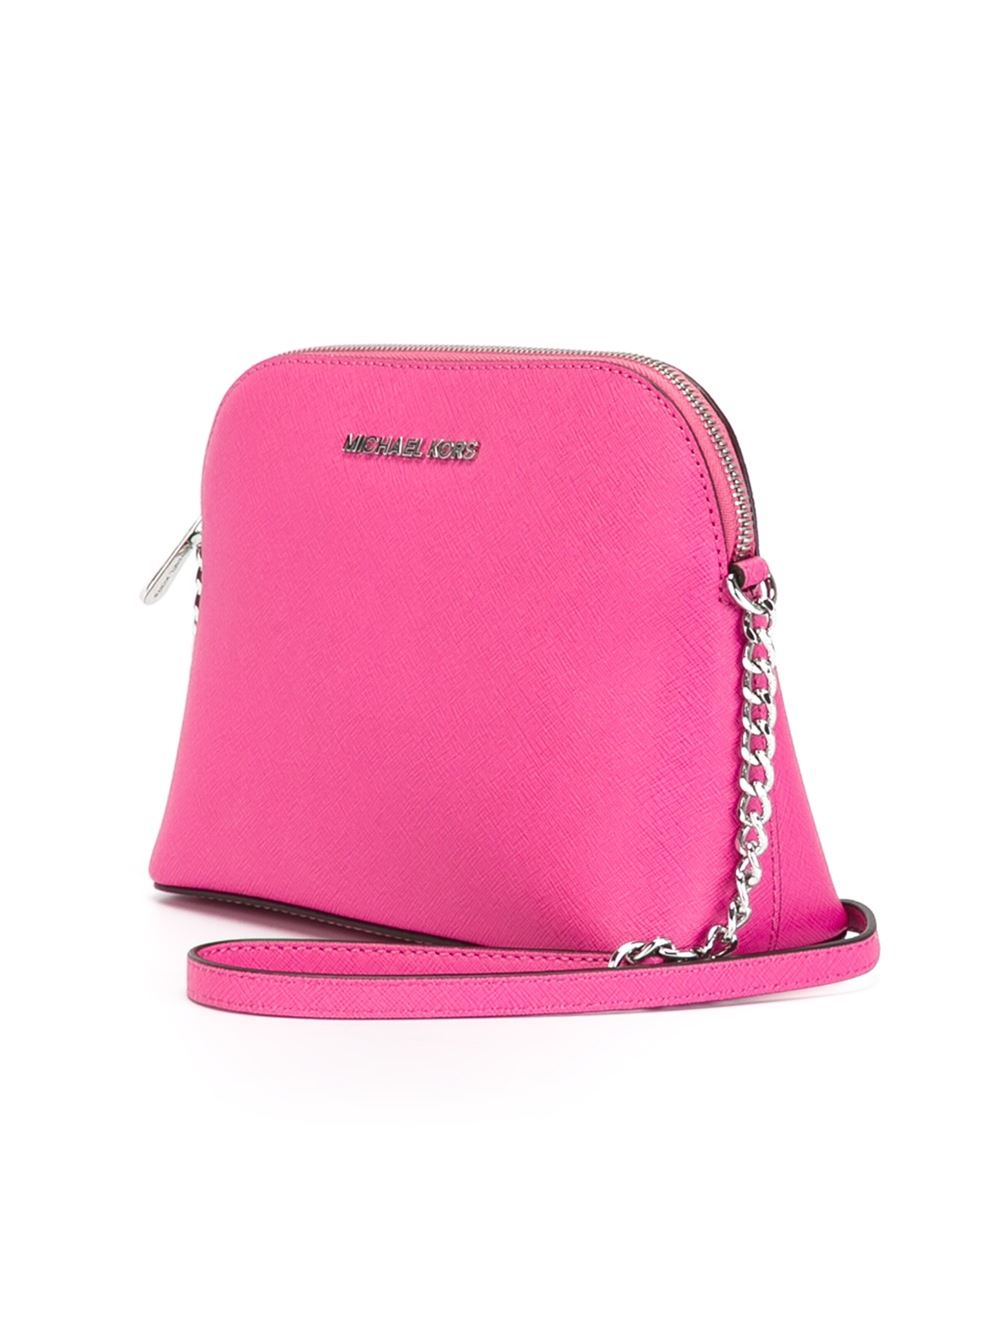 5c6cf22b3625 ... discount code for lyst michael michael kors cindy crossbody bag in pink  aef14 61b20